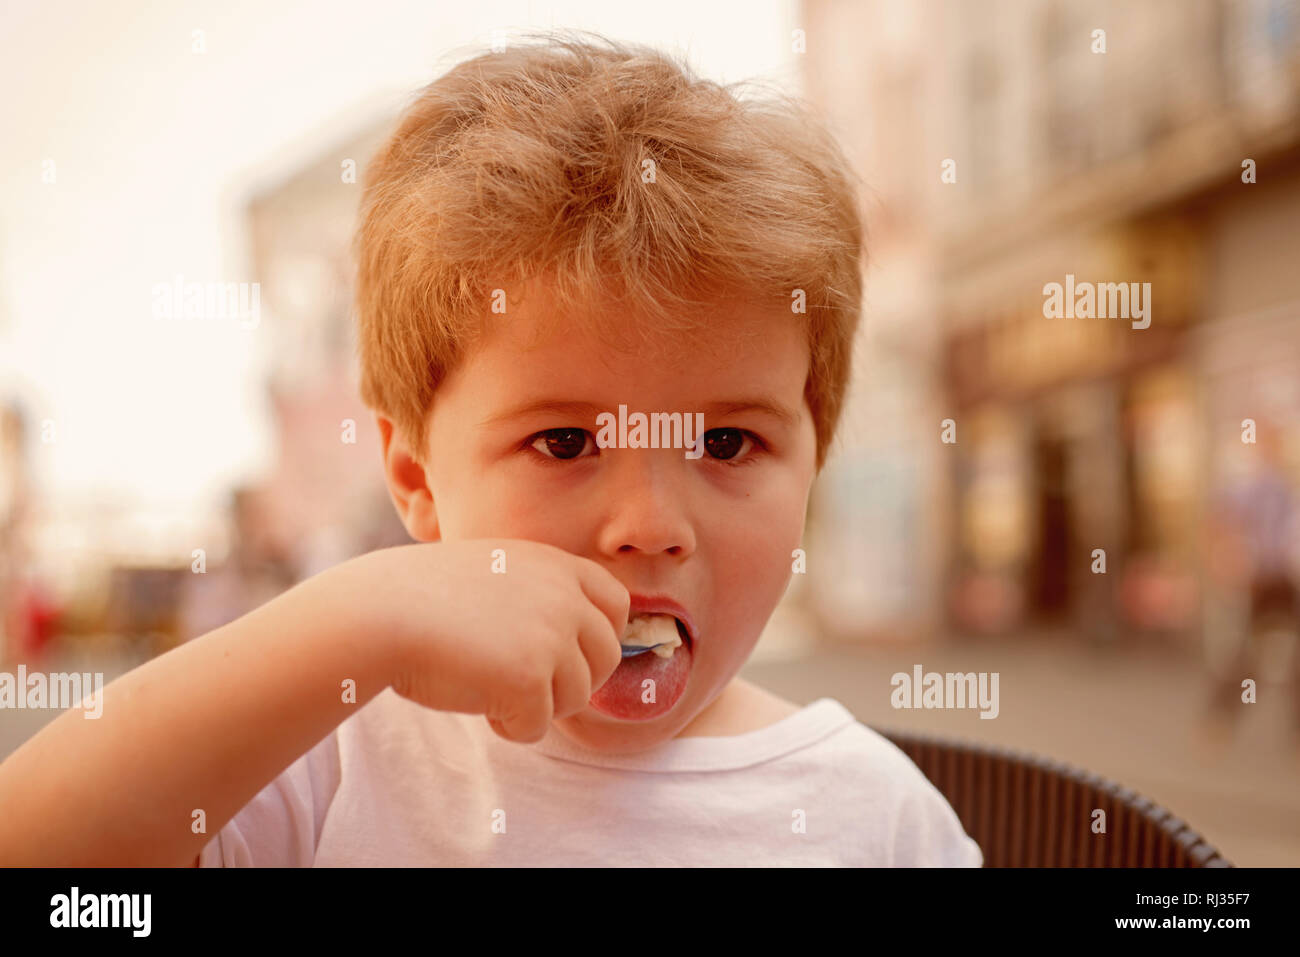 Taking care of a kids hair. Little child eating outdoor. Small boy with stylish haircut. Little child with short blond hair. Healthy hair care habits - Stock Image